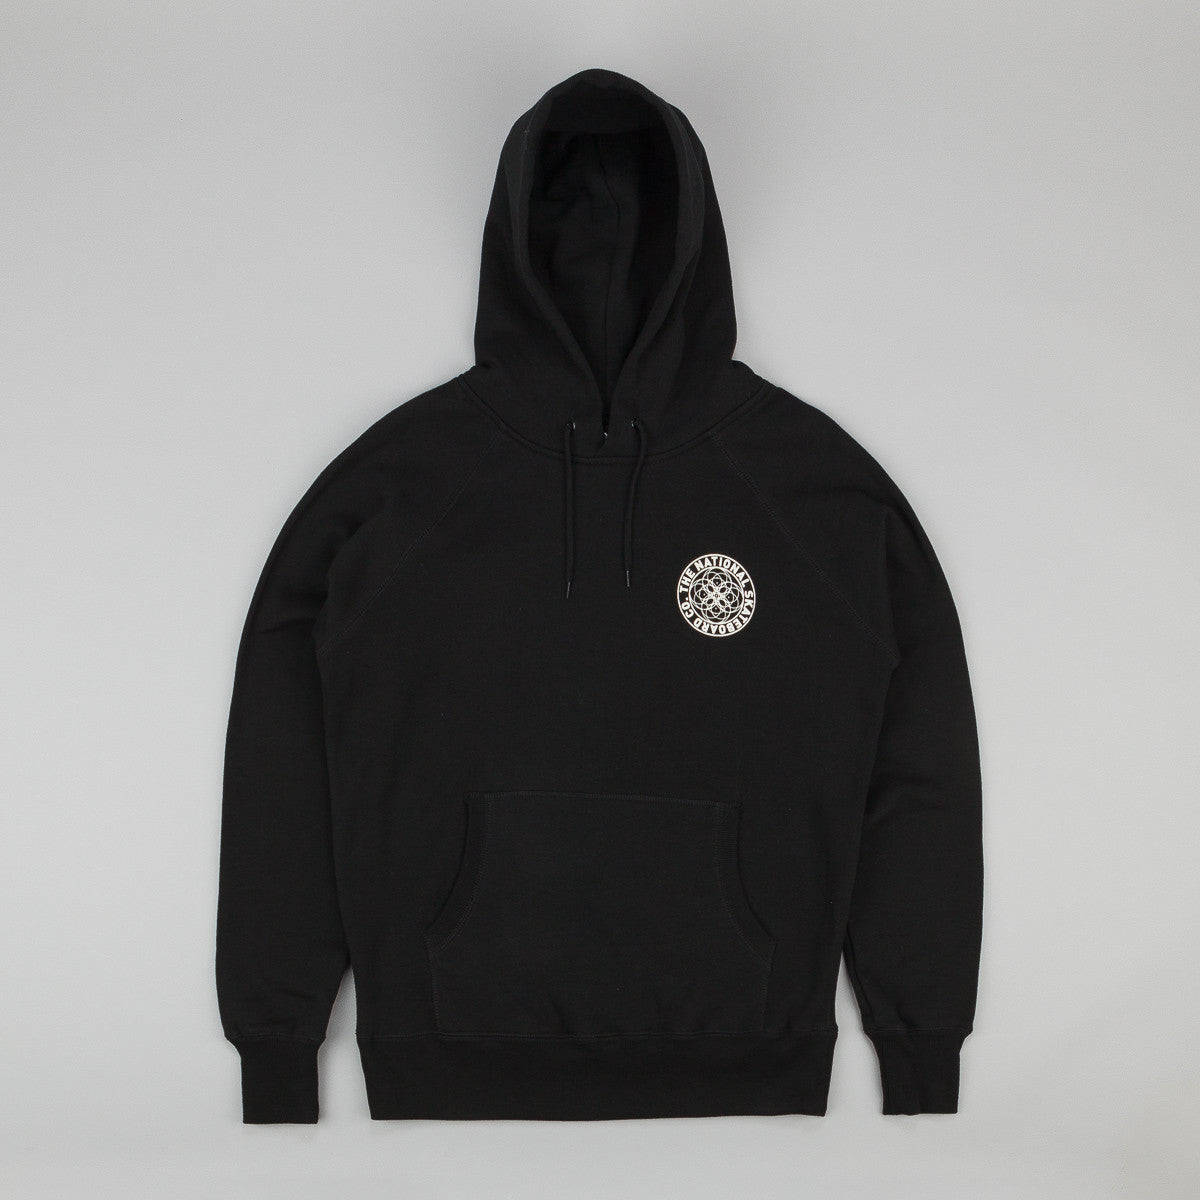 The National Skateboard Co Universal Hooded Sweatshirt